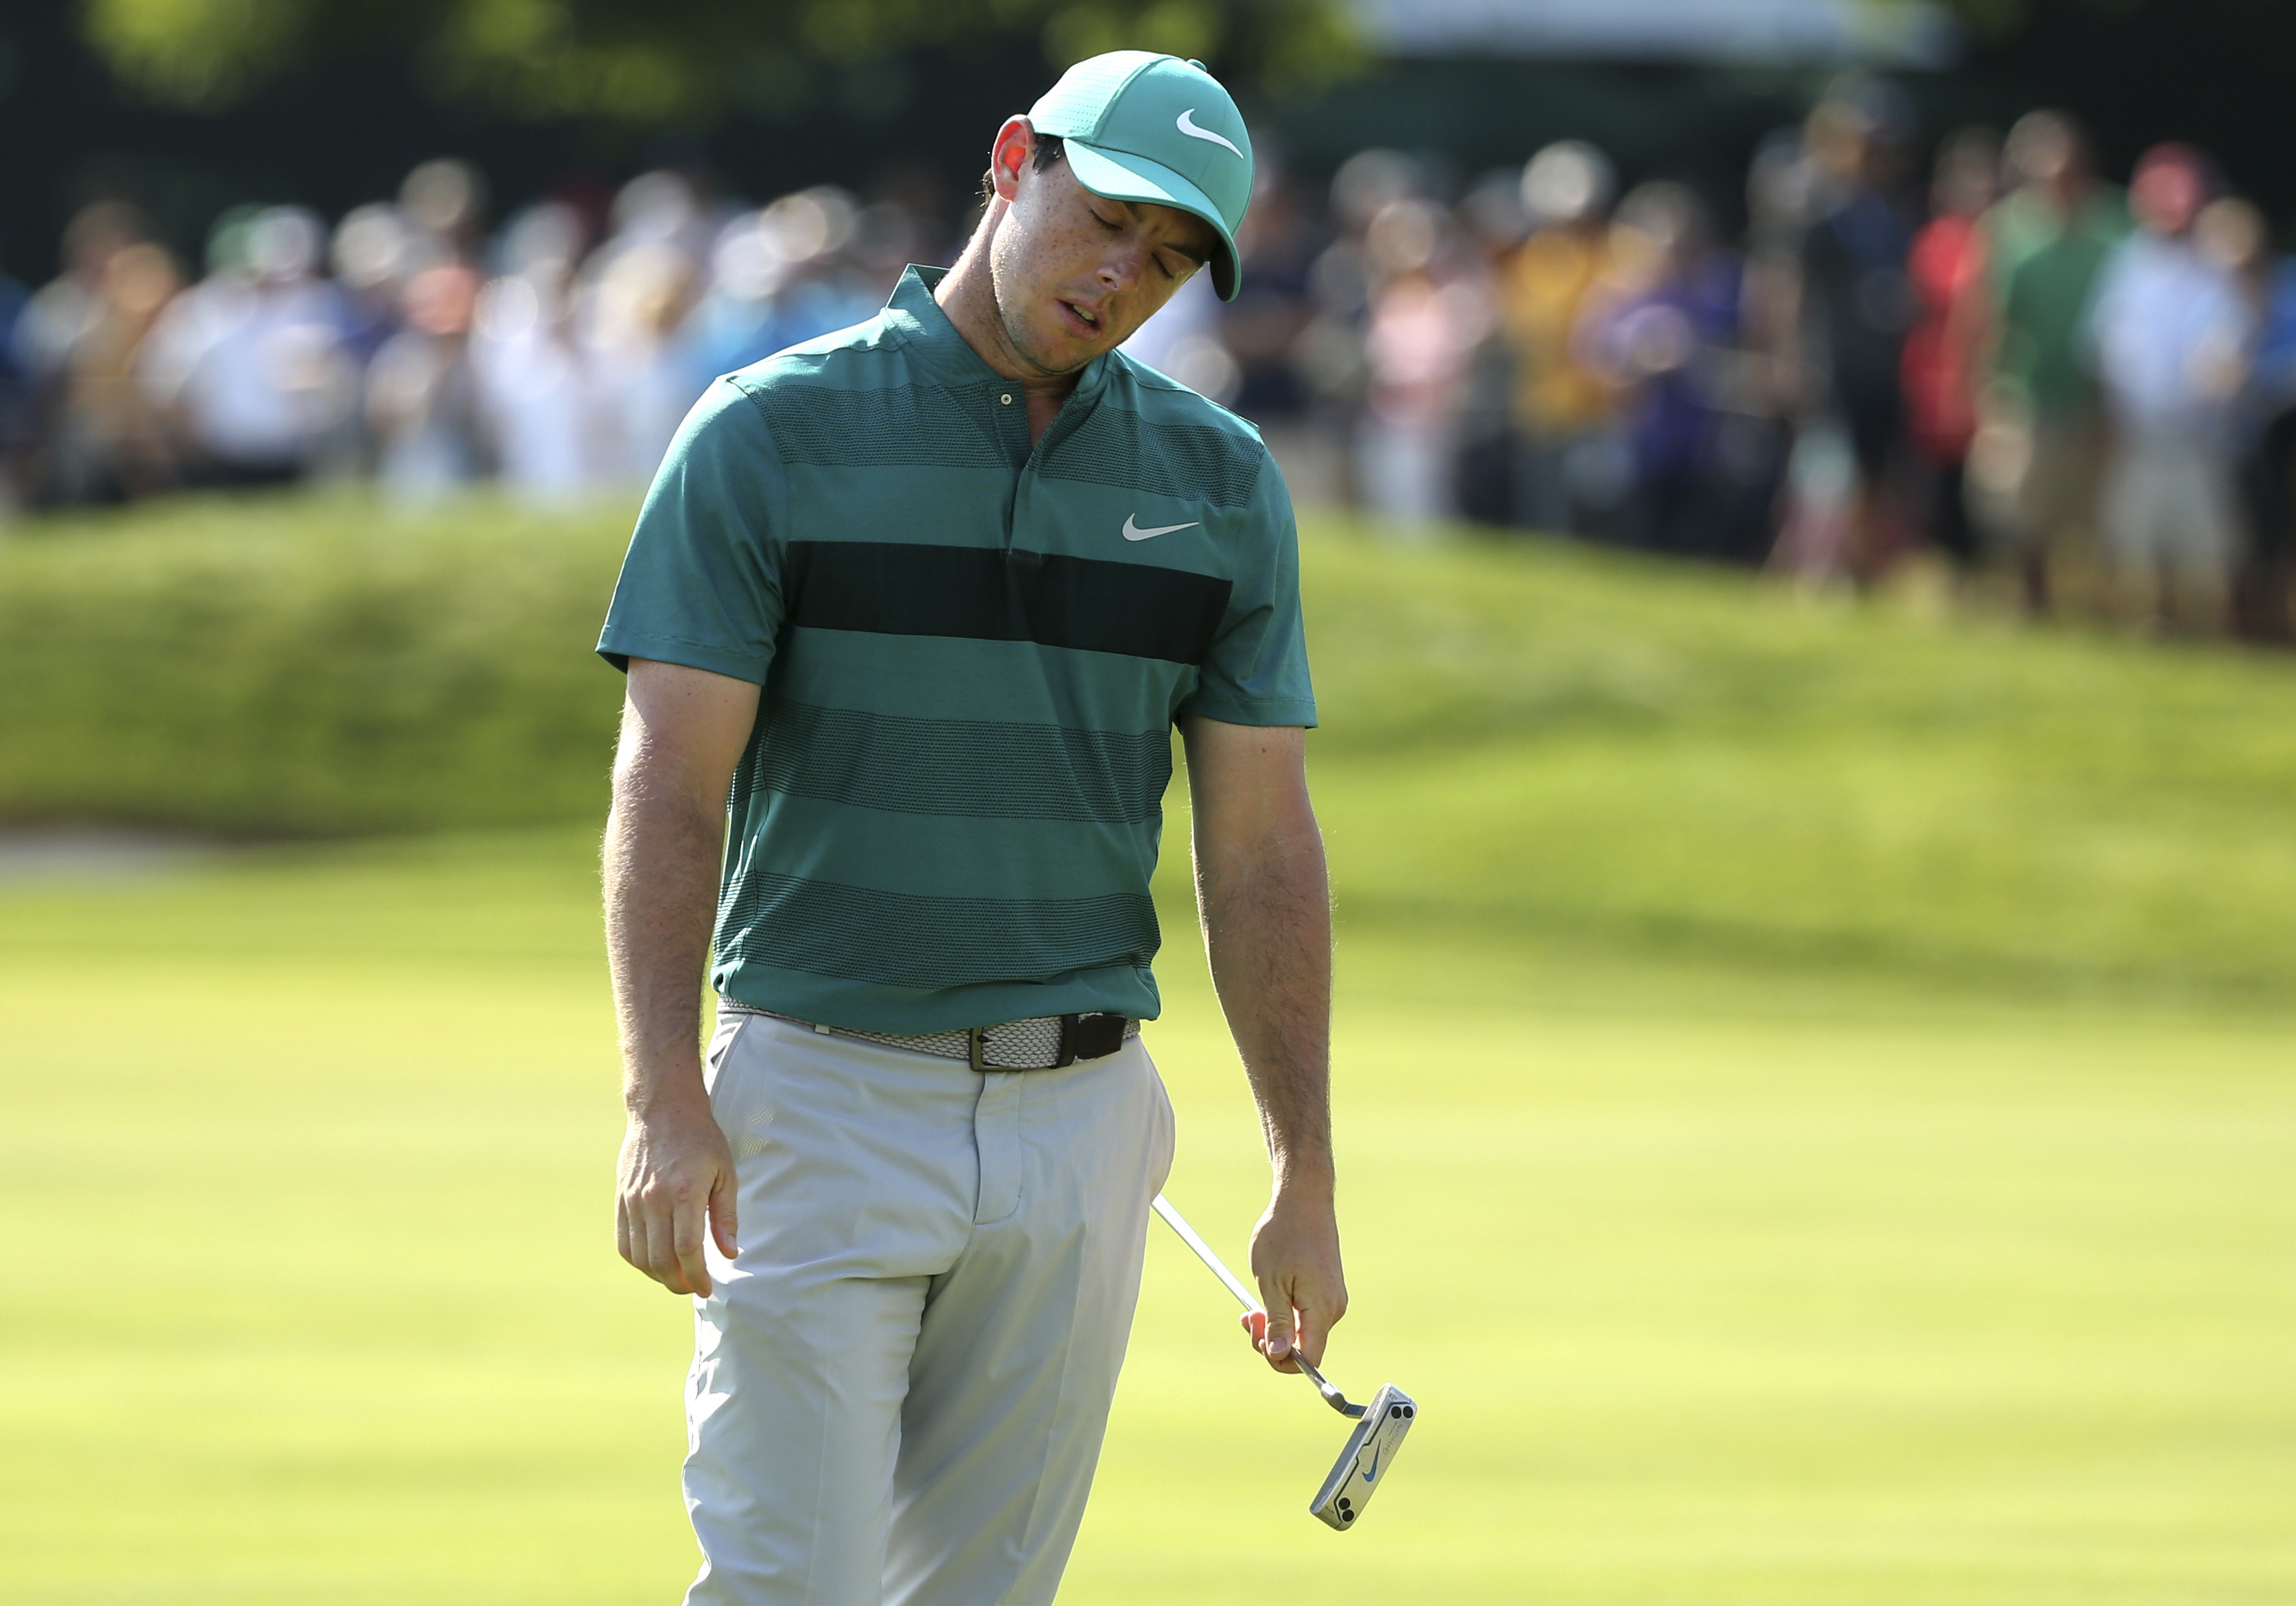 Rory McIlroy react to missing a putt on the 10th hole during the second round of the PGA Championship golf tournament at Baltusrol Golf Club in Springfield, N.J., Friday, July 29, 2016. (AP Photo/Seth Wenig)